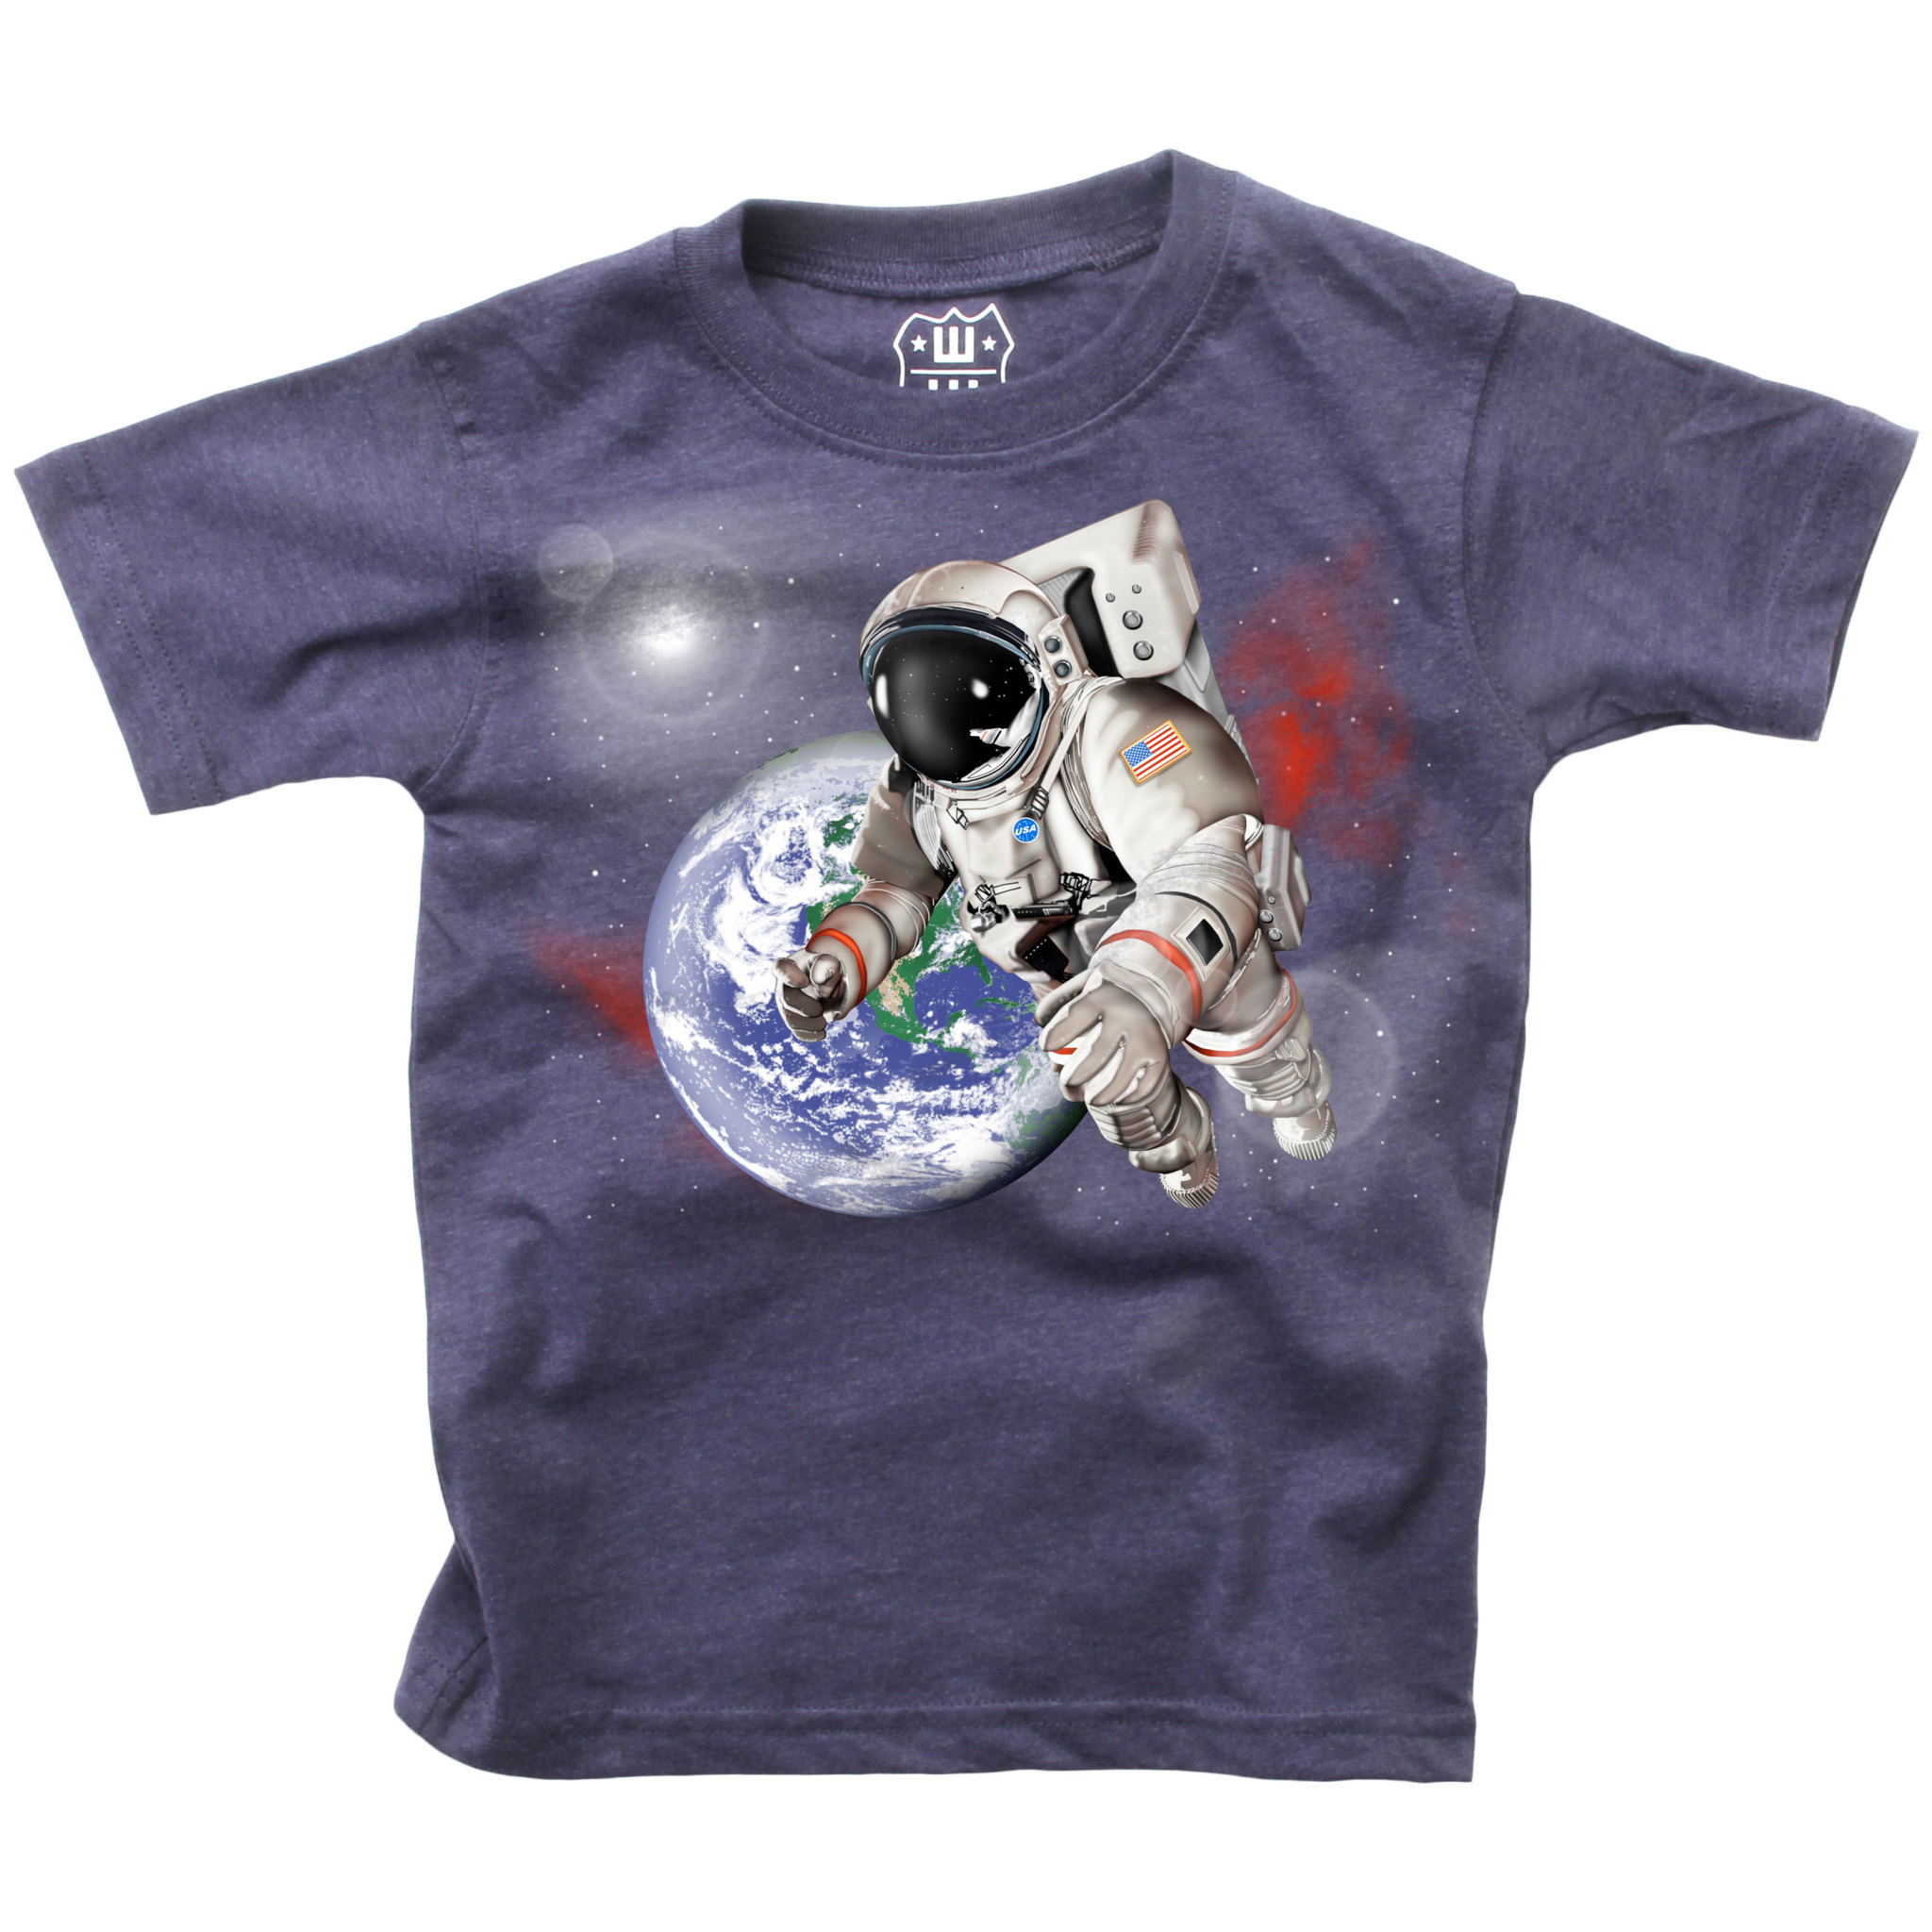 Wes & Willy Wes & Willy | Astronaut Baby Tee